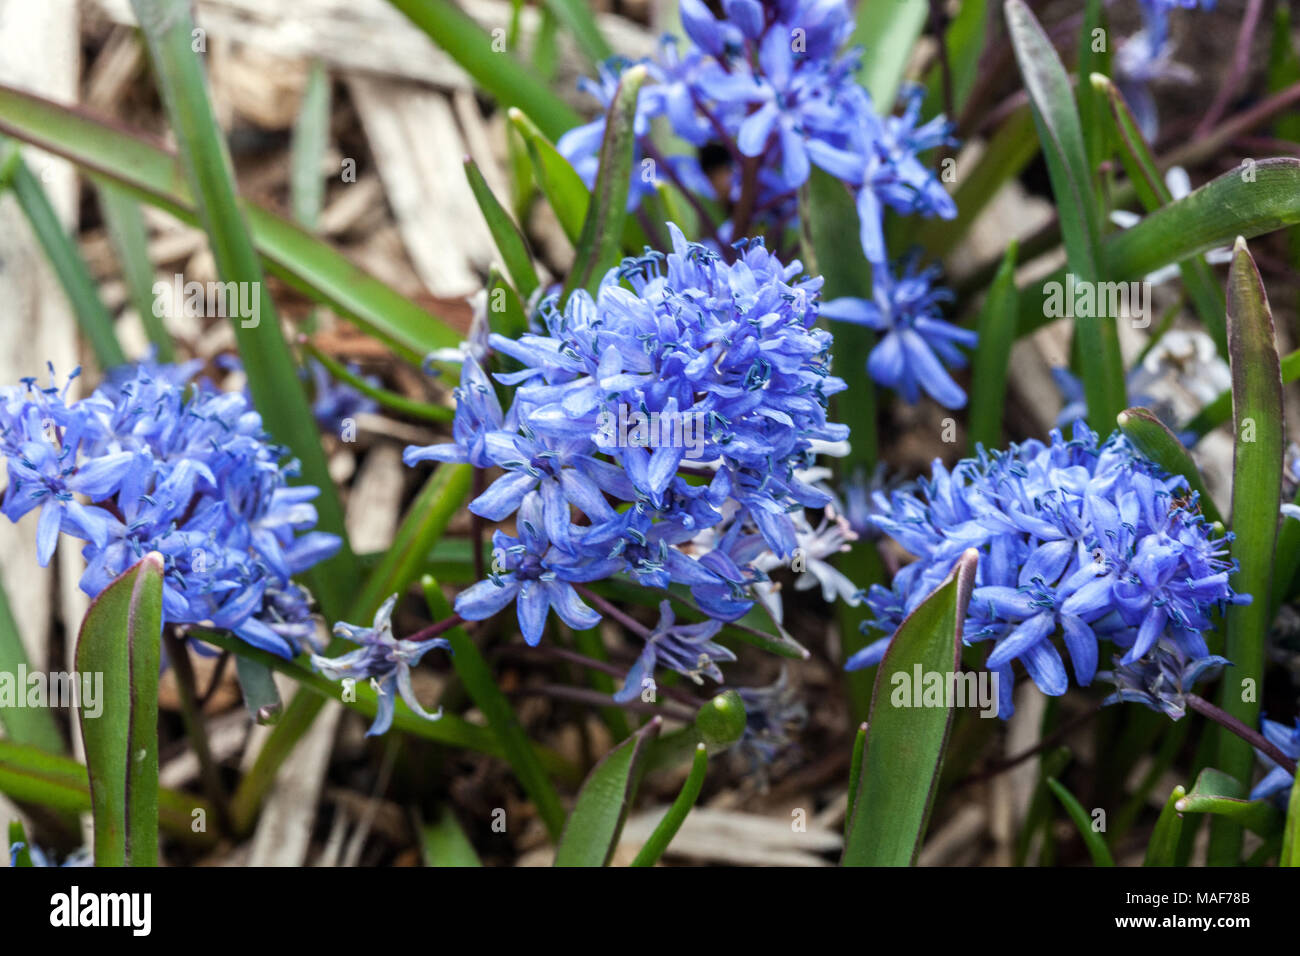 Alpine Squill Scilla Bifolia Flowering Bulbous Plant In Early